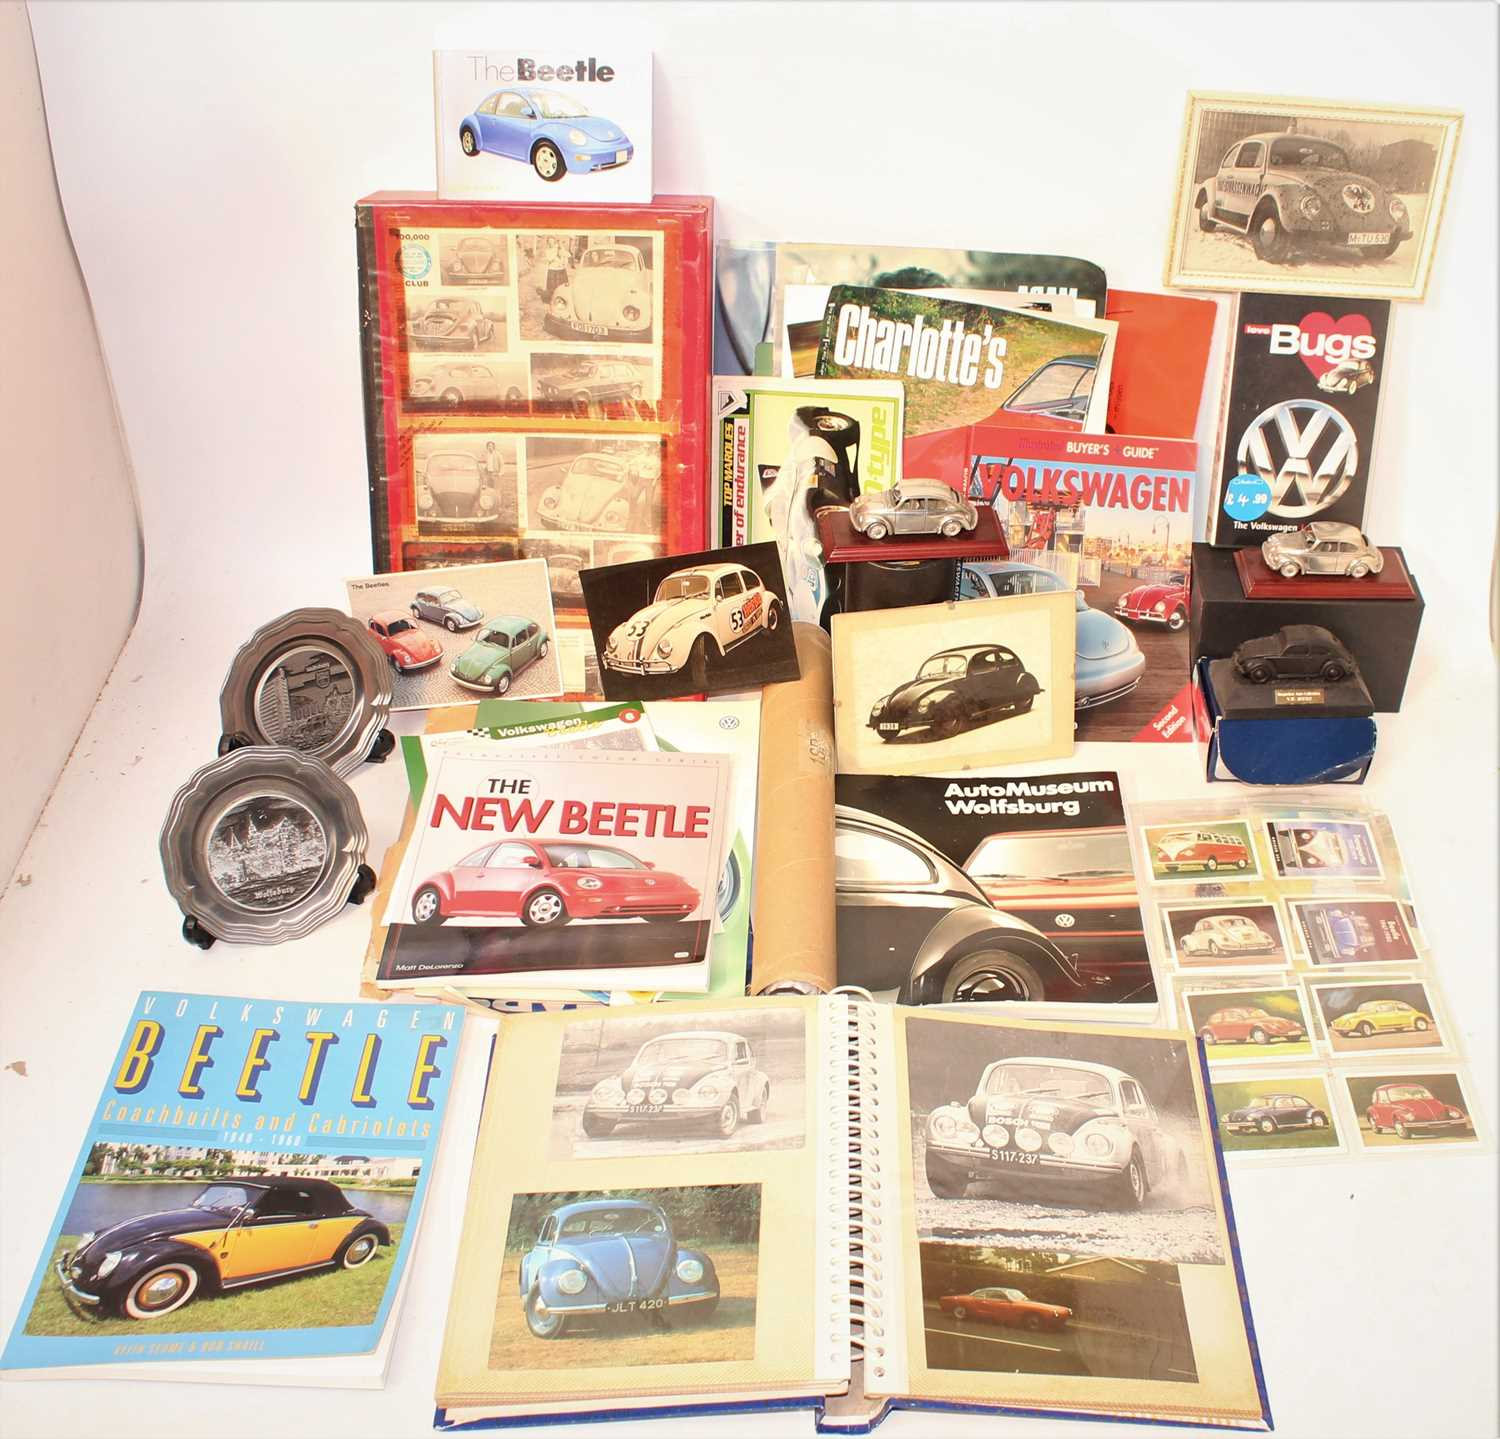 Two boxes containing a quantity of various VW related ephemera, trade catalogues, figurines, press